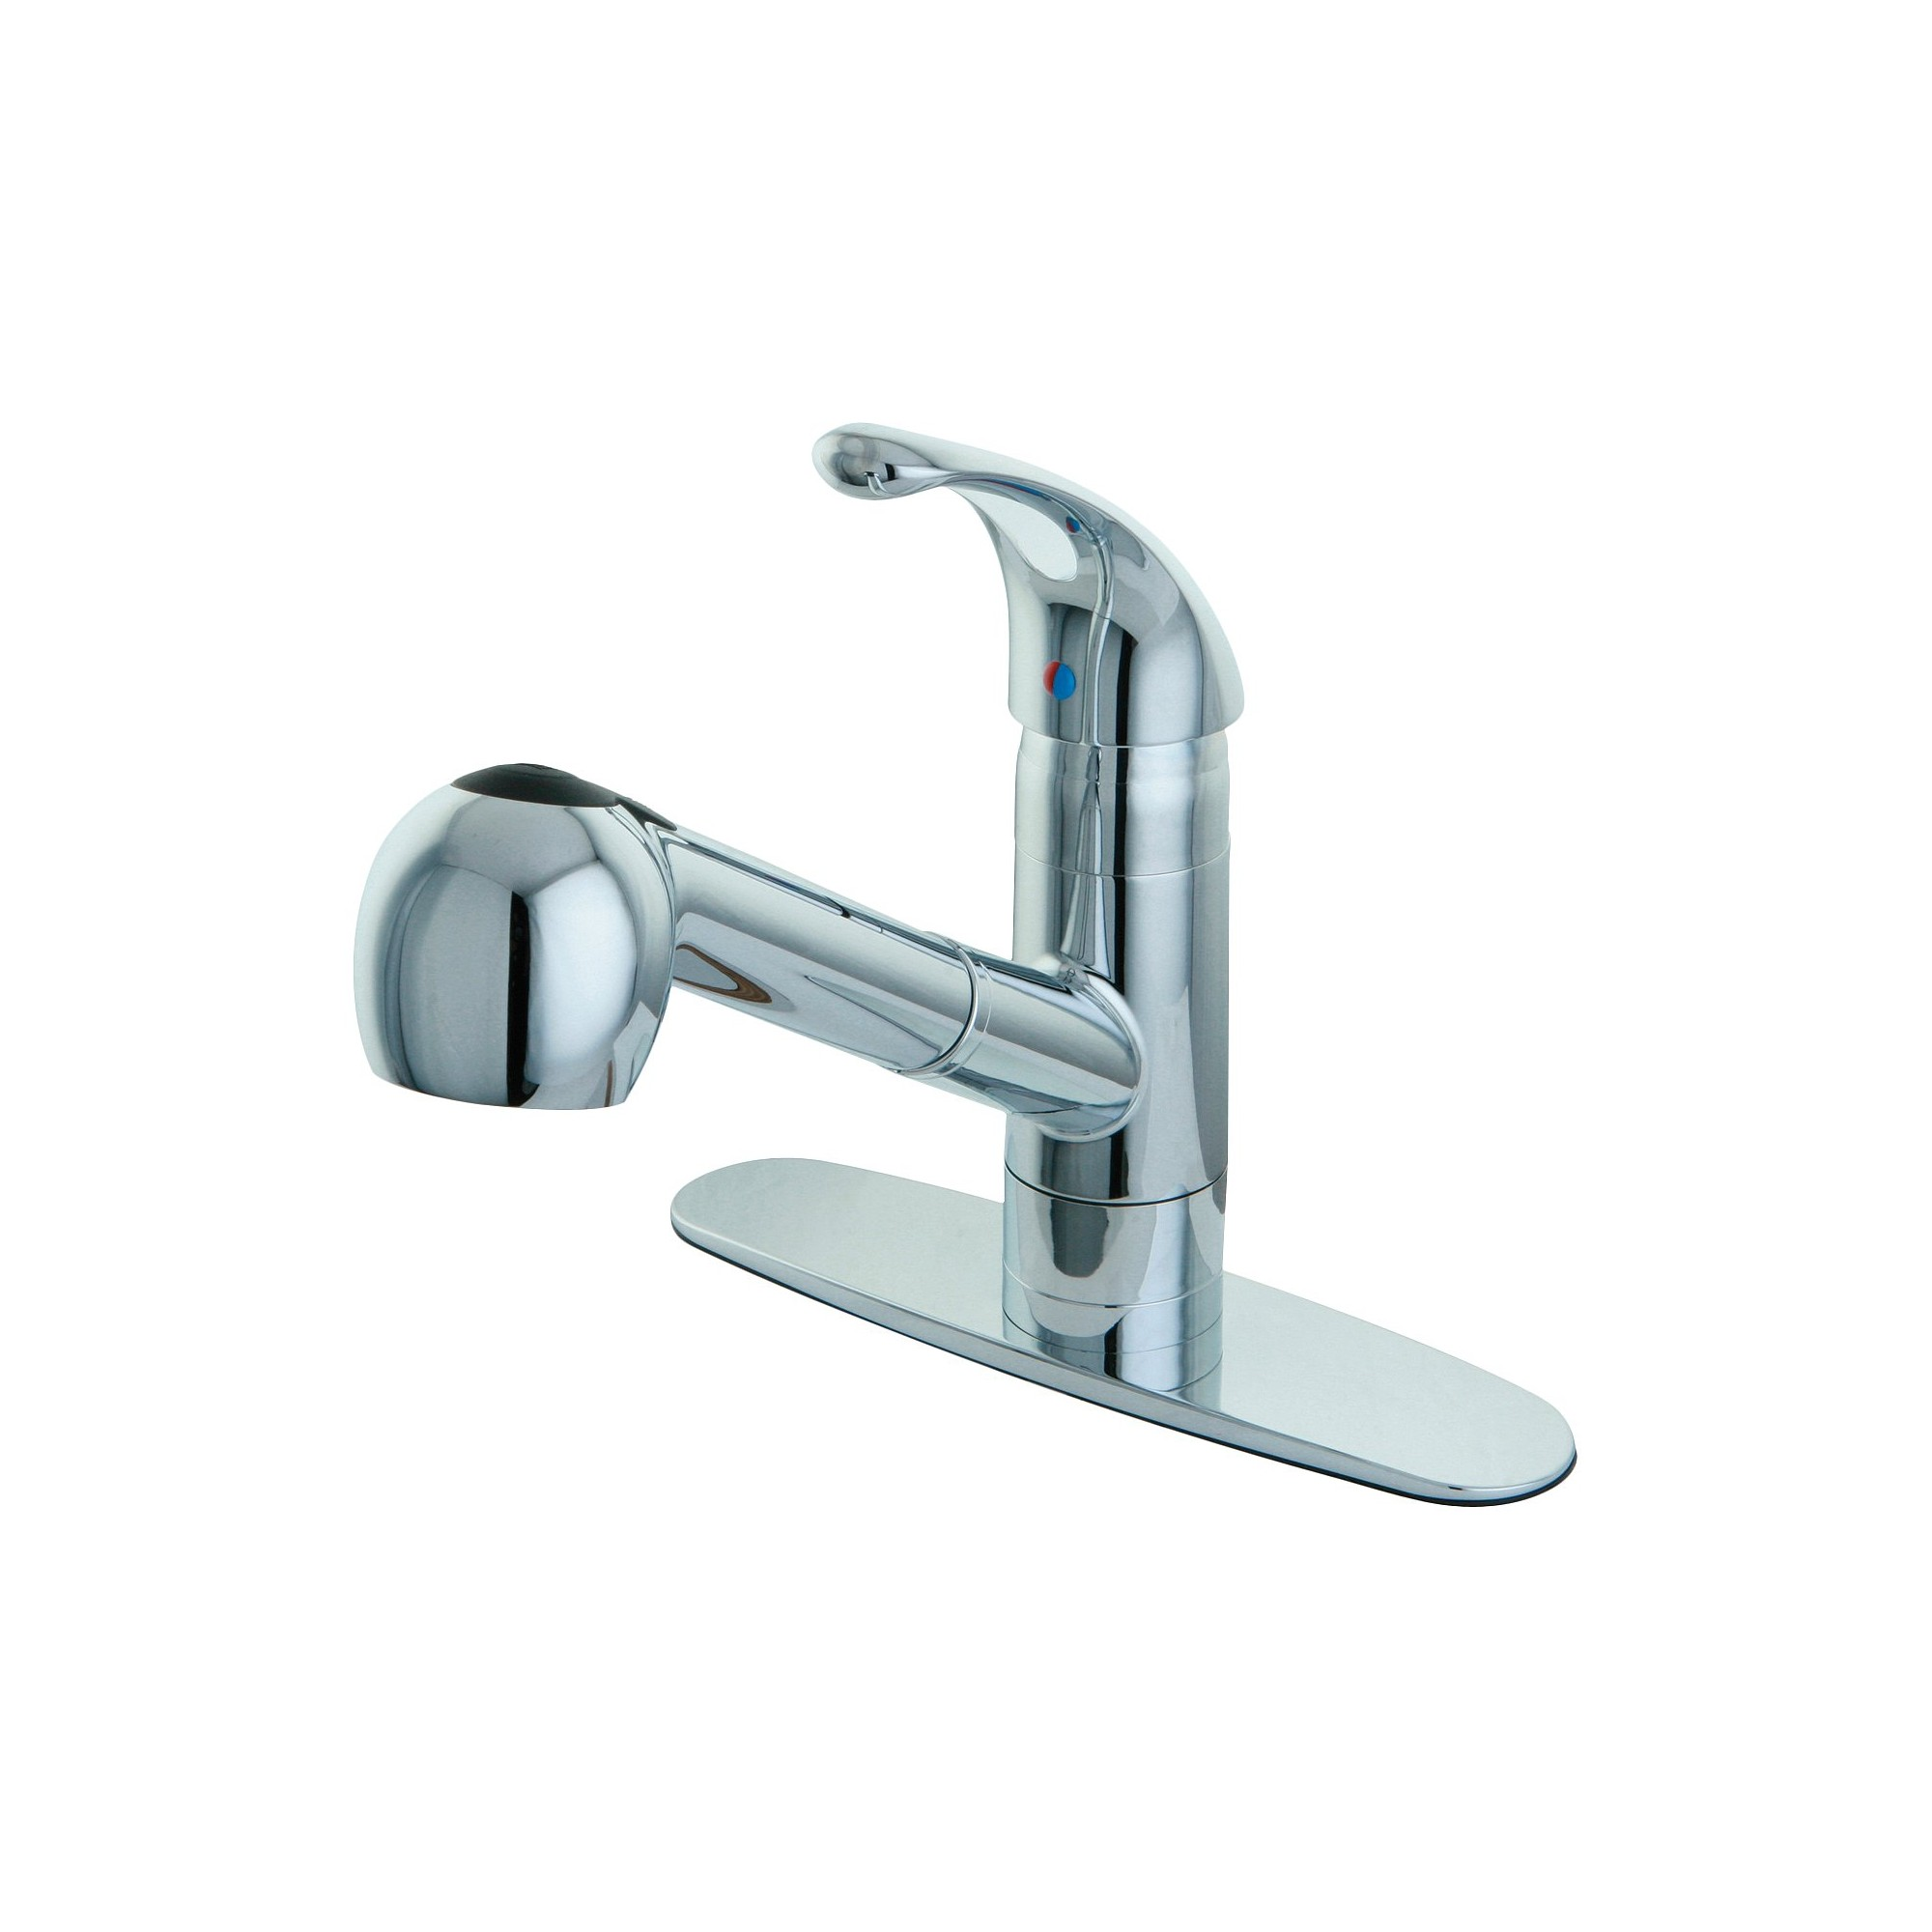 Pull-Out Sprayer Kitchen Faucet Chrome - Kingston Brass, Grey